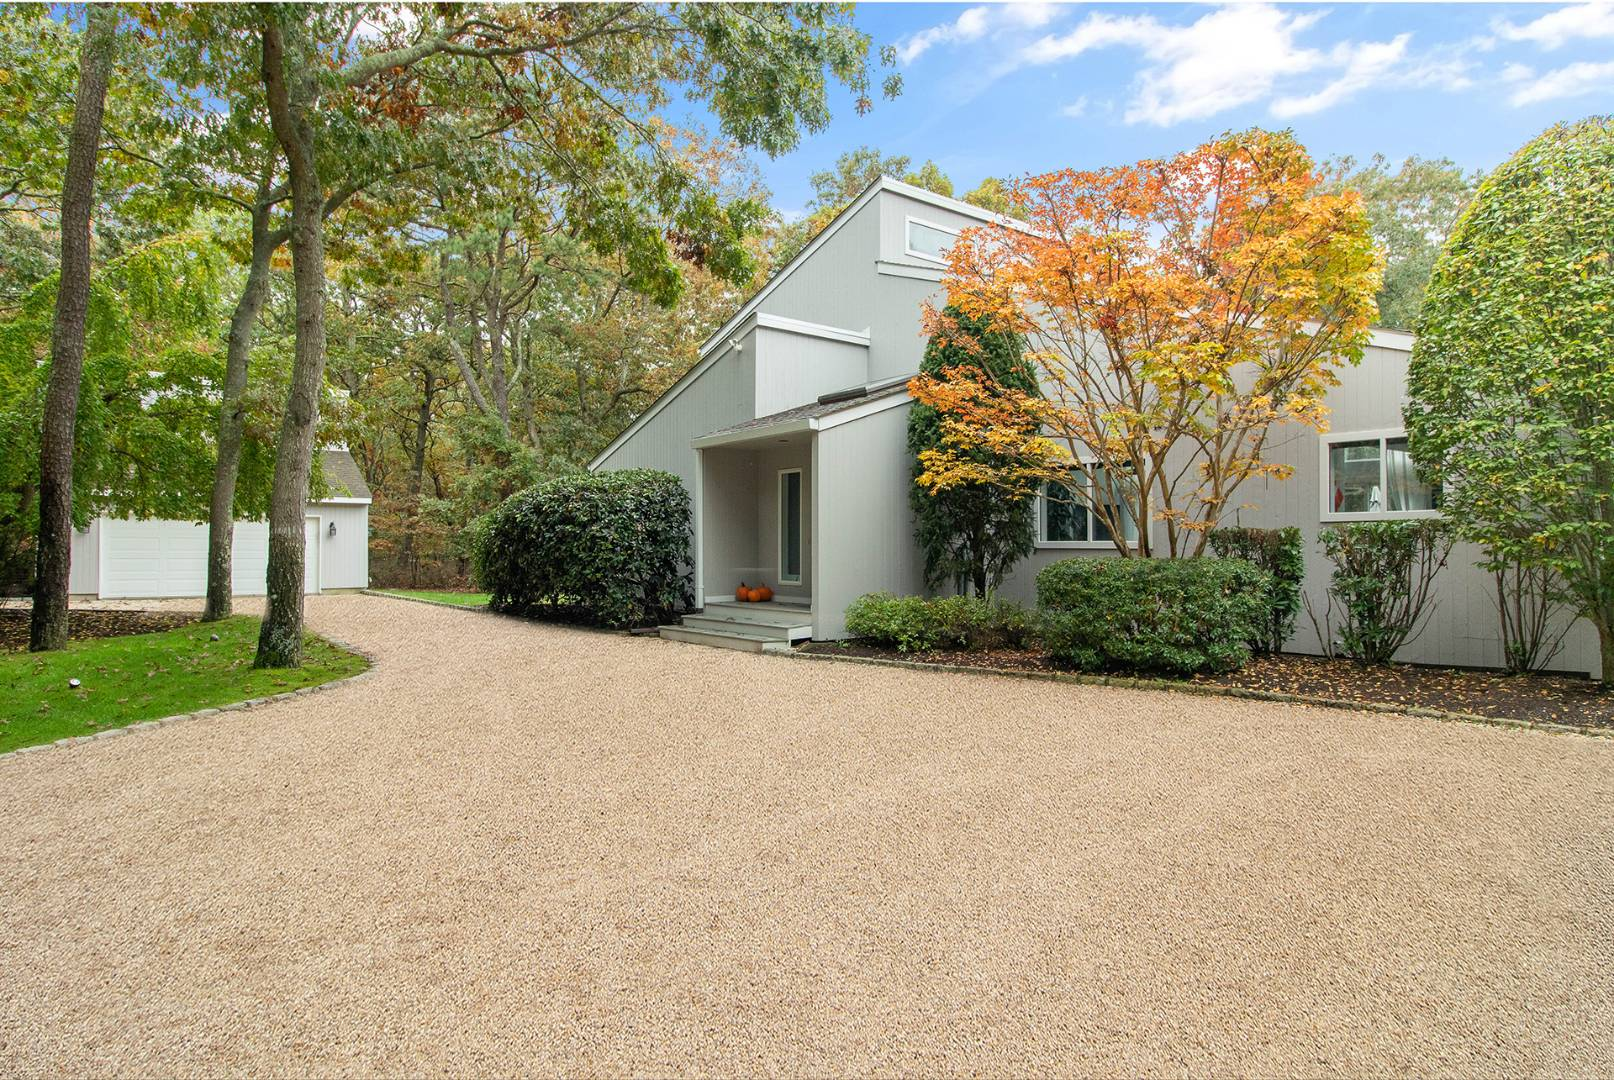 2658 Quogue Riverhead Rd